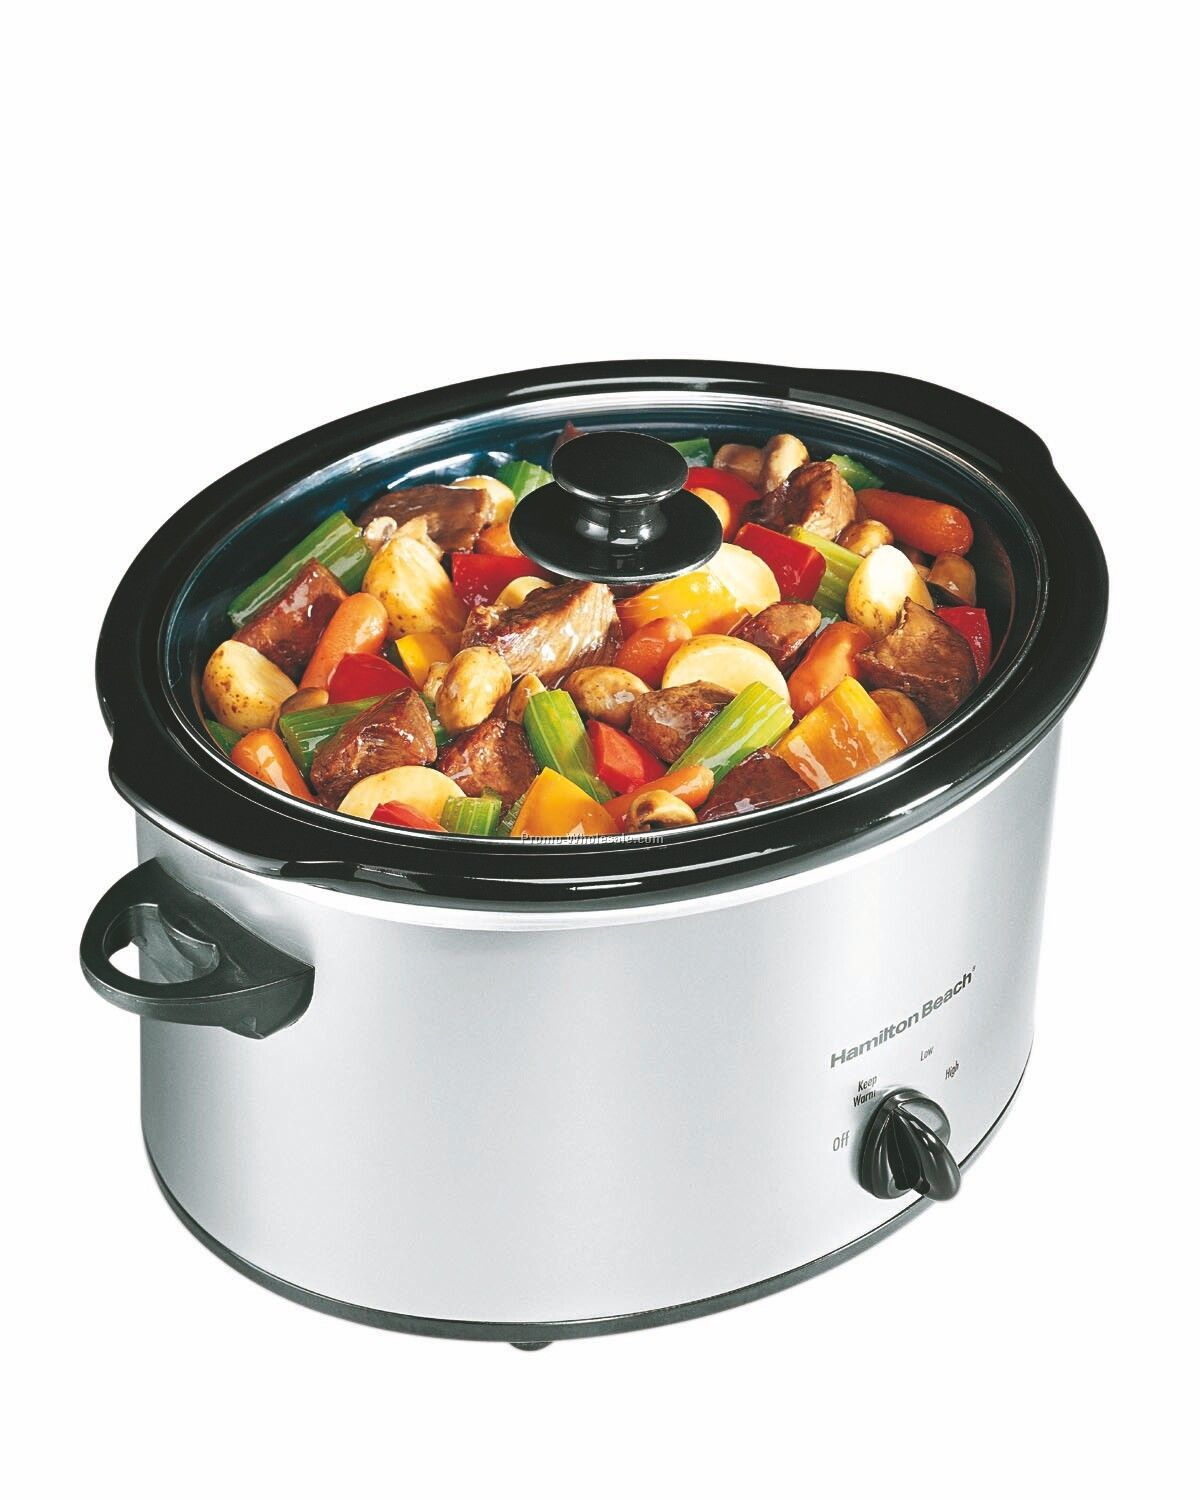 Hamilton Beach Classic Chrome 5 Quart Slow Cooker